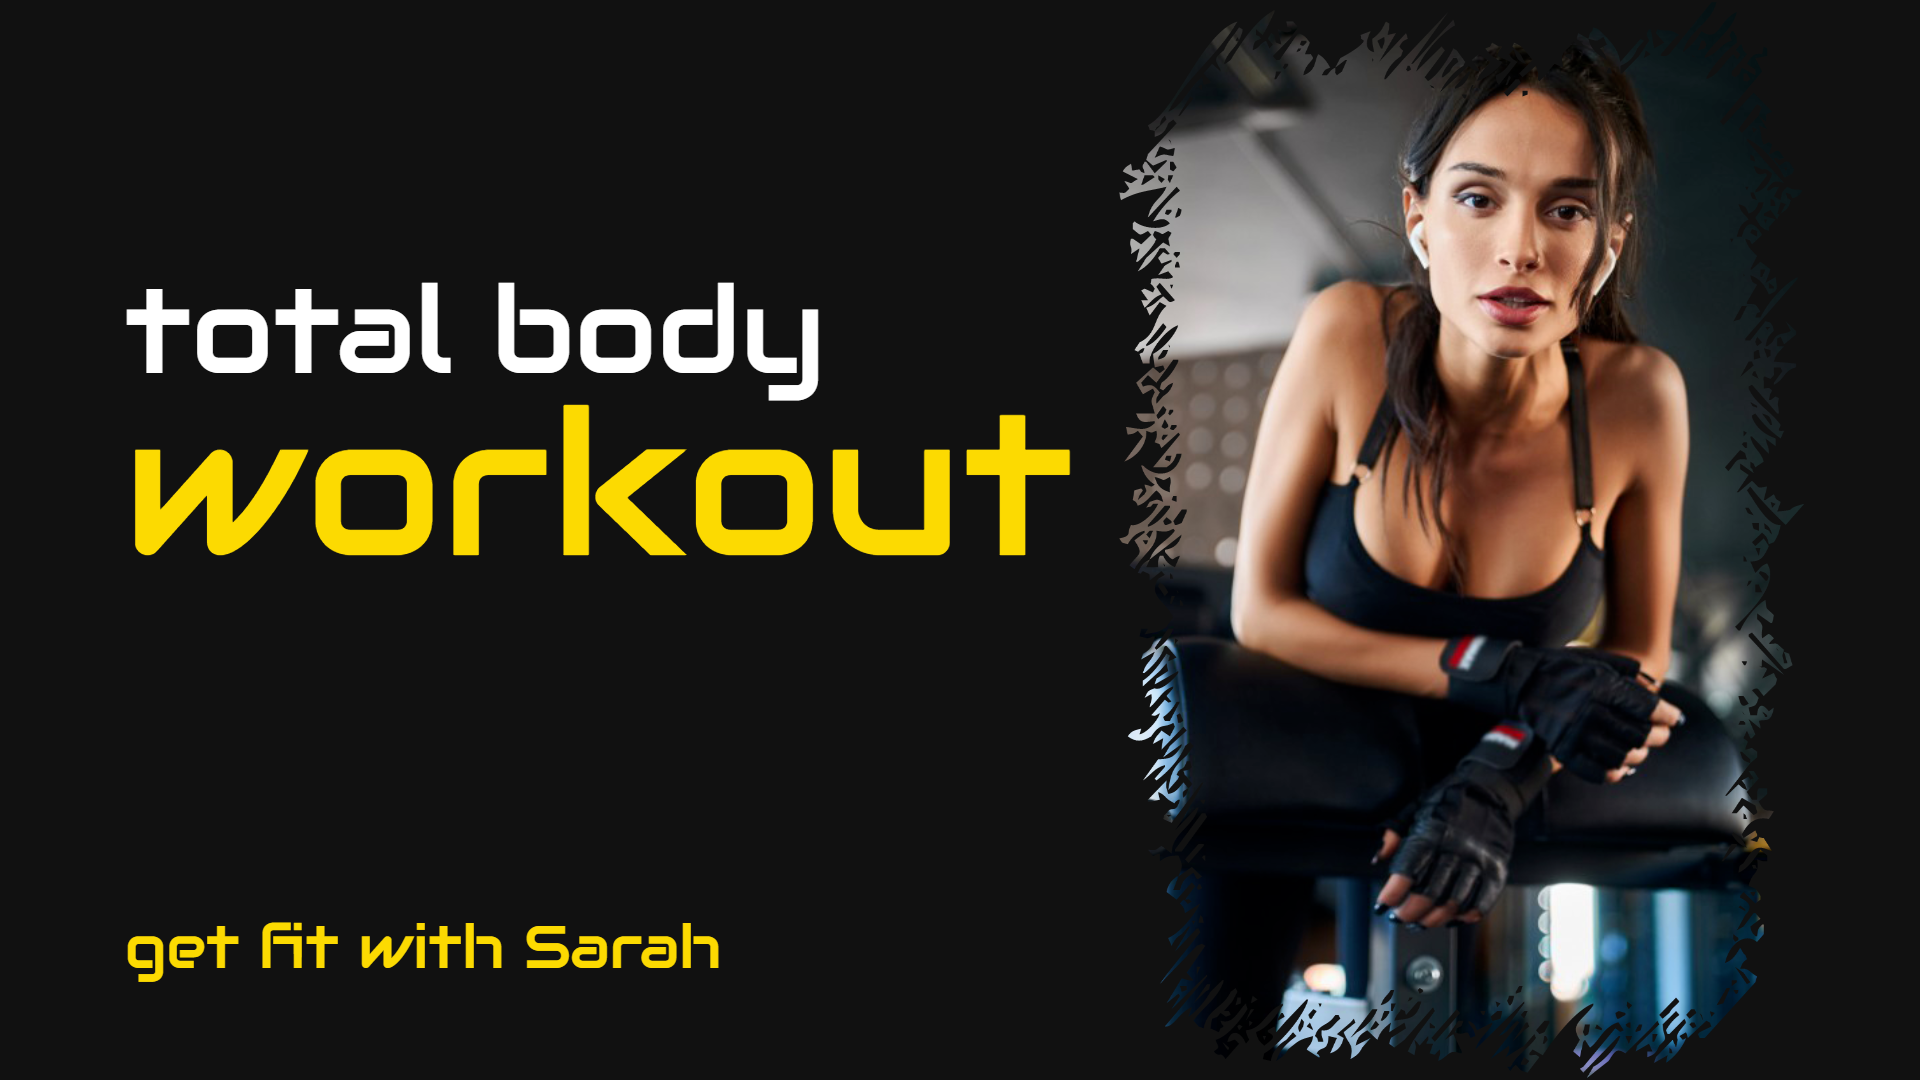 Get fit Total body workout Youtube Design  Template